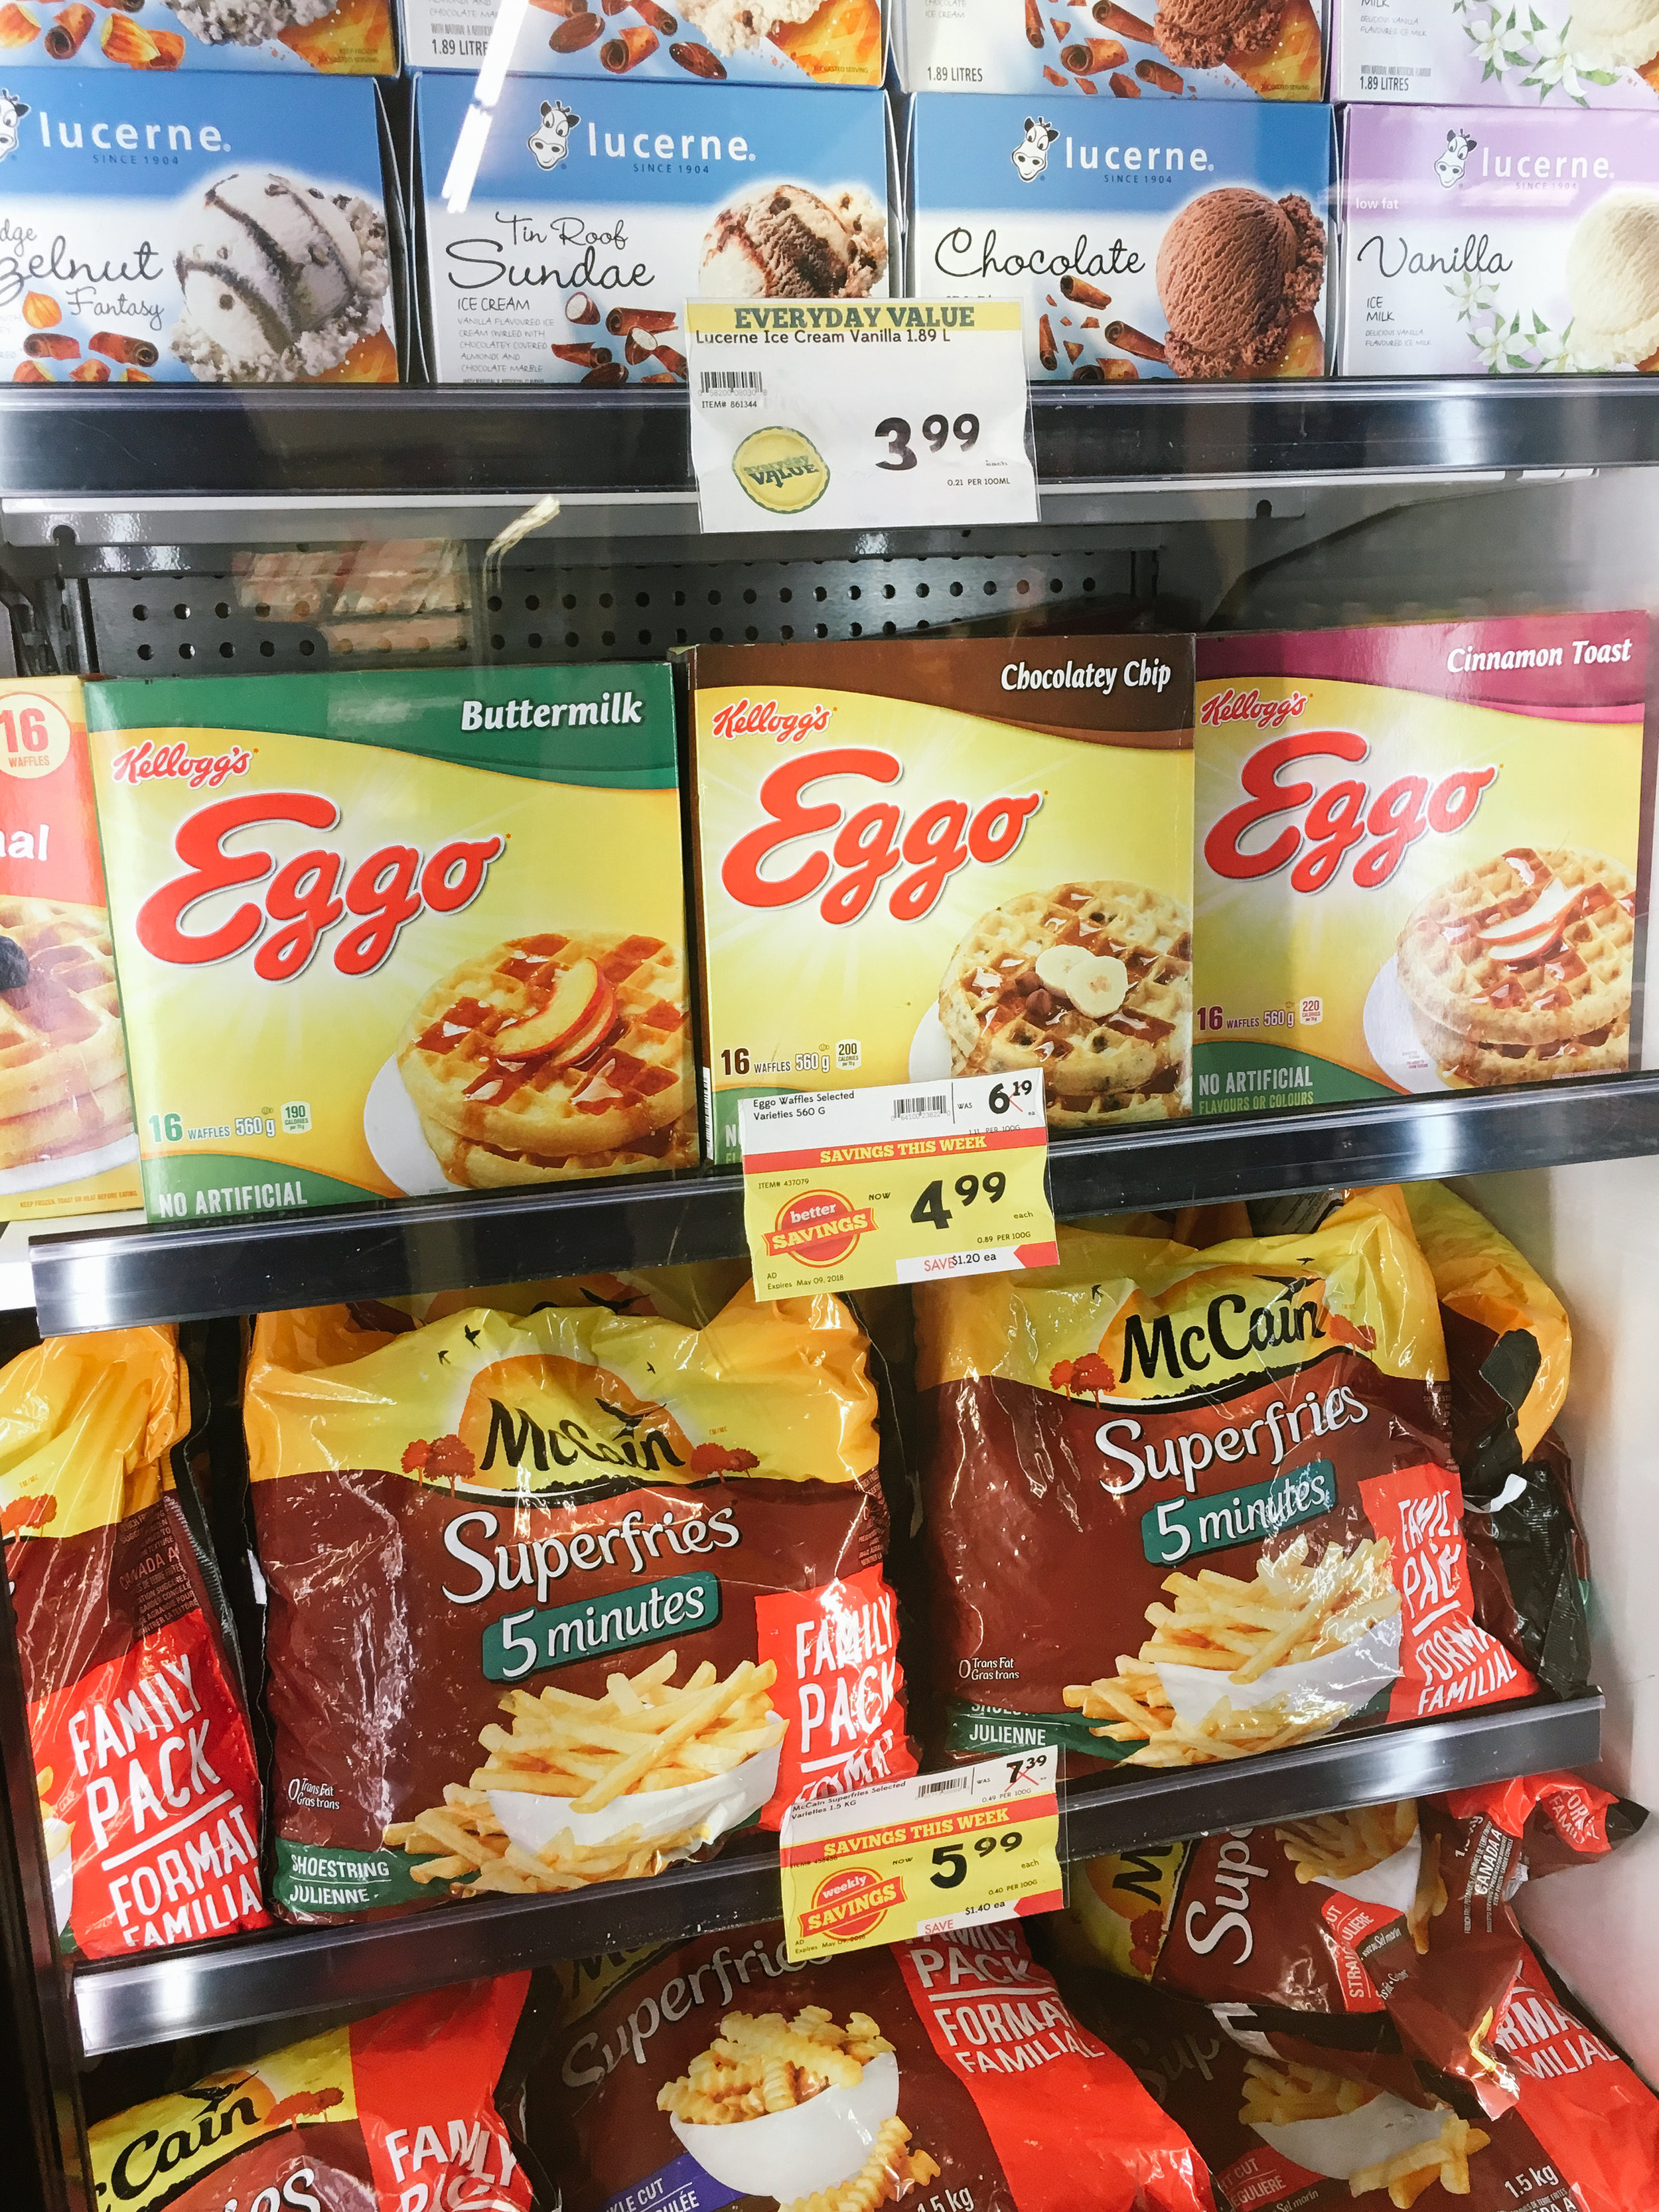 Eggos! Was very tempted to purchase.